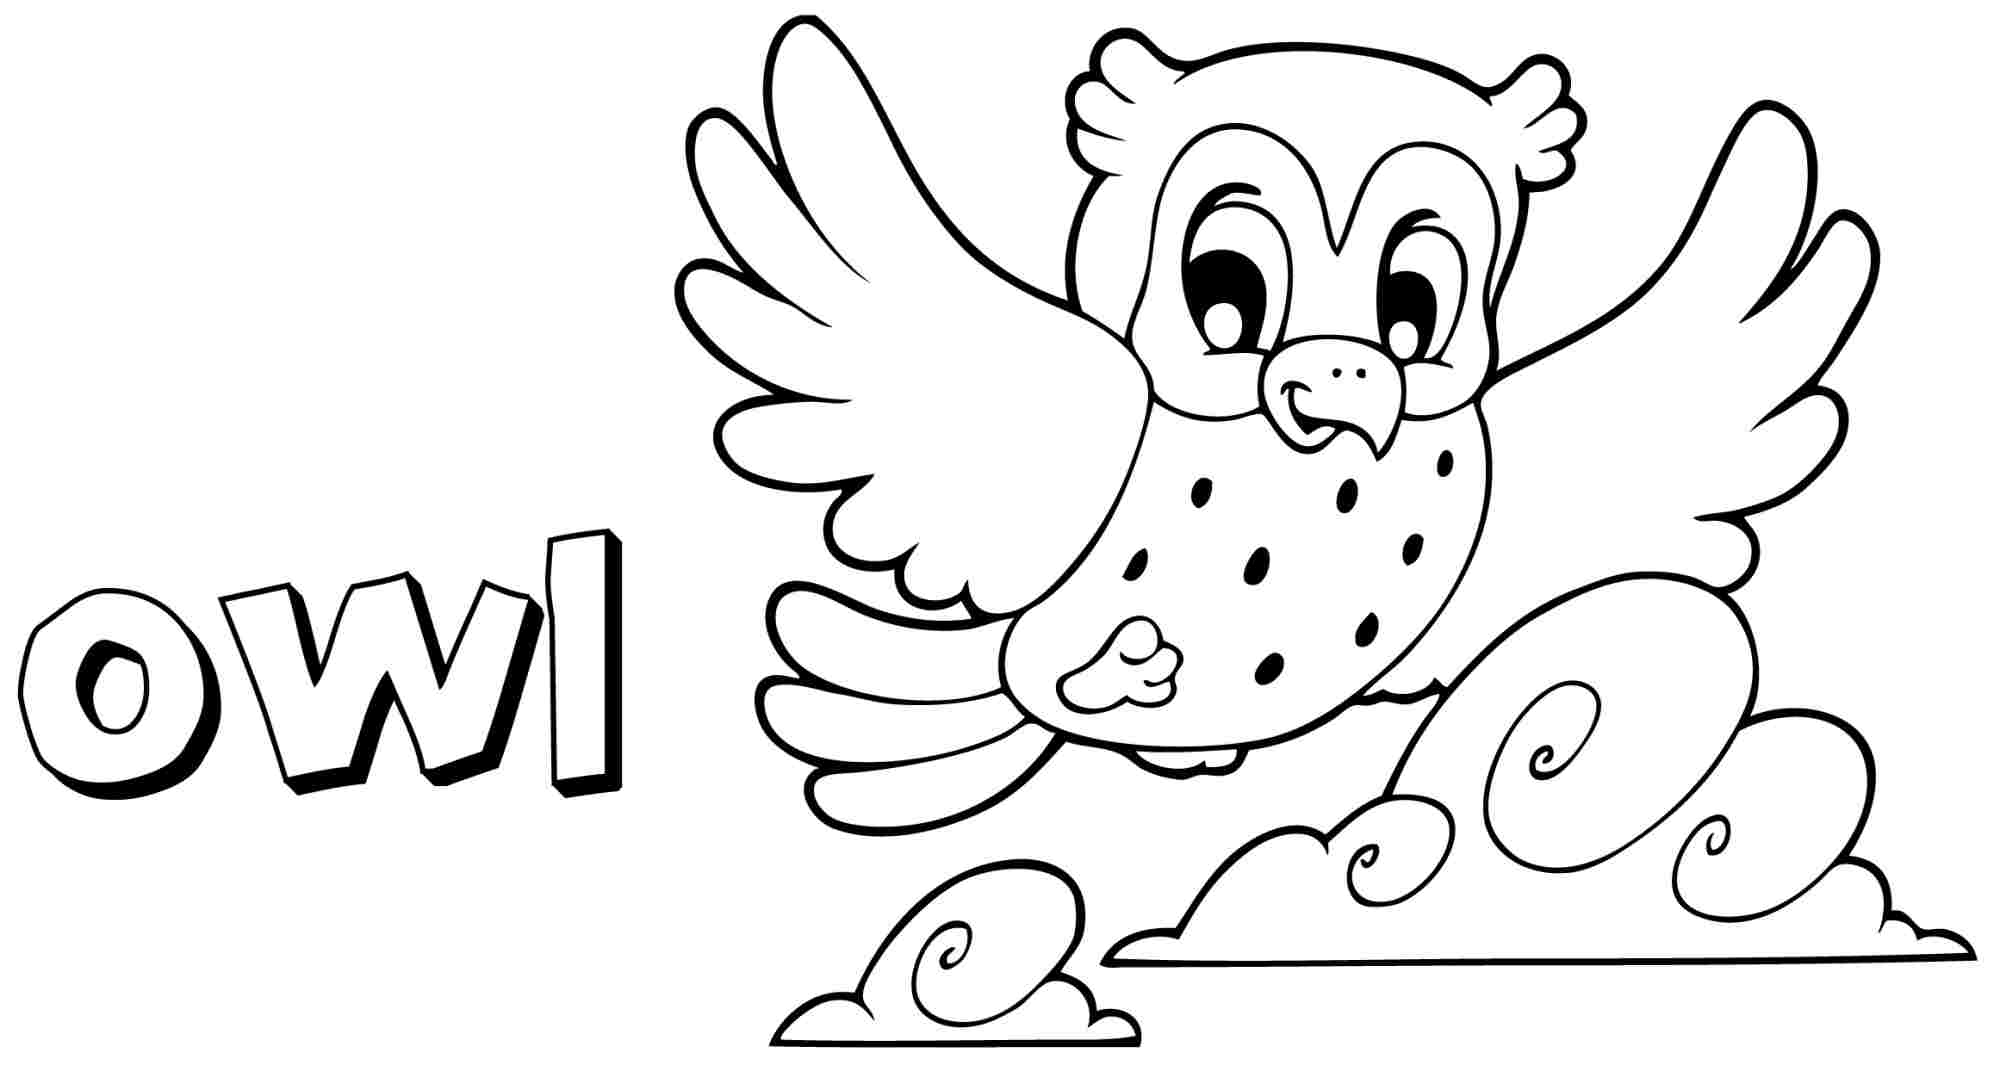 Adult Best Owl Coloring Pages Free Images best cute owl coloring pages az free image 21 voteforverde com gallery images